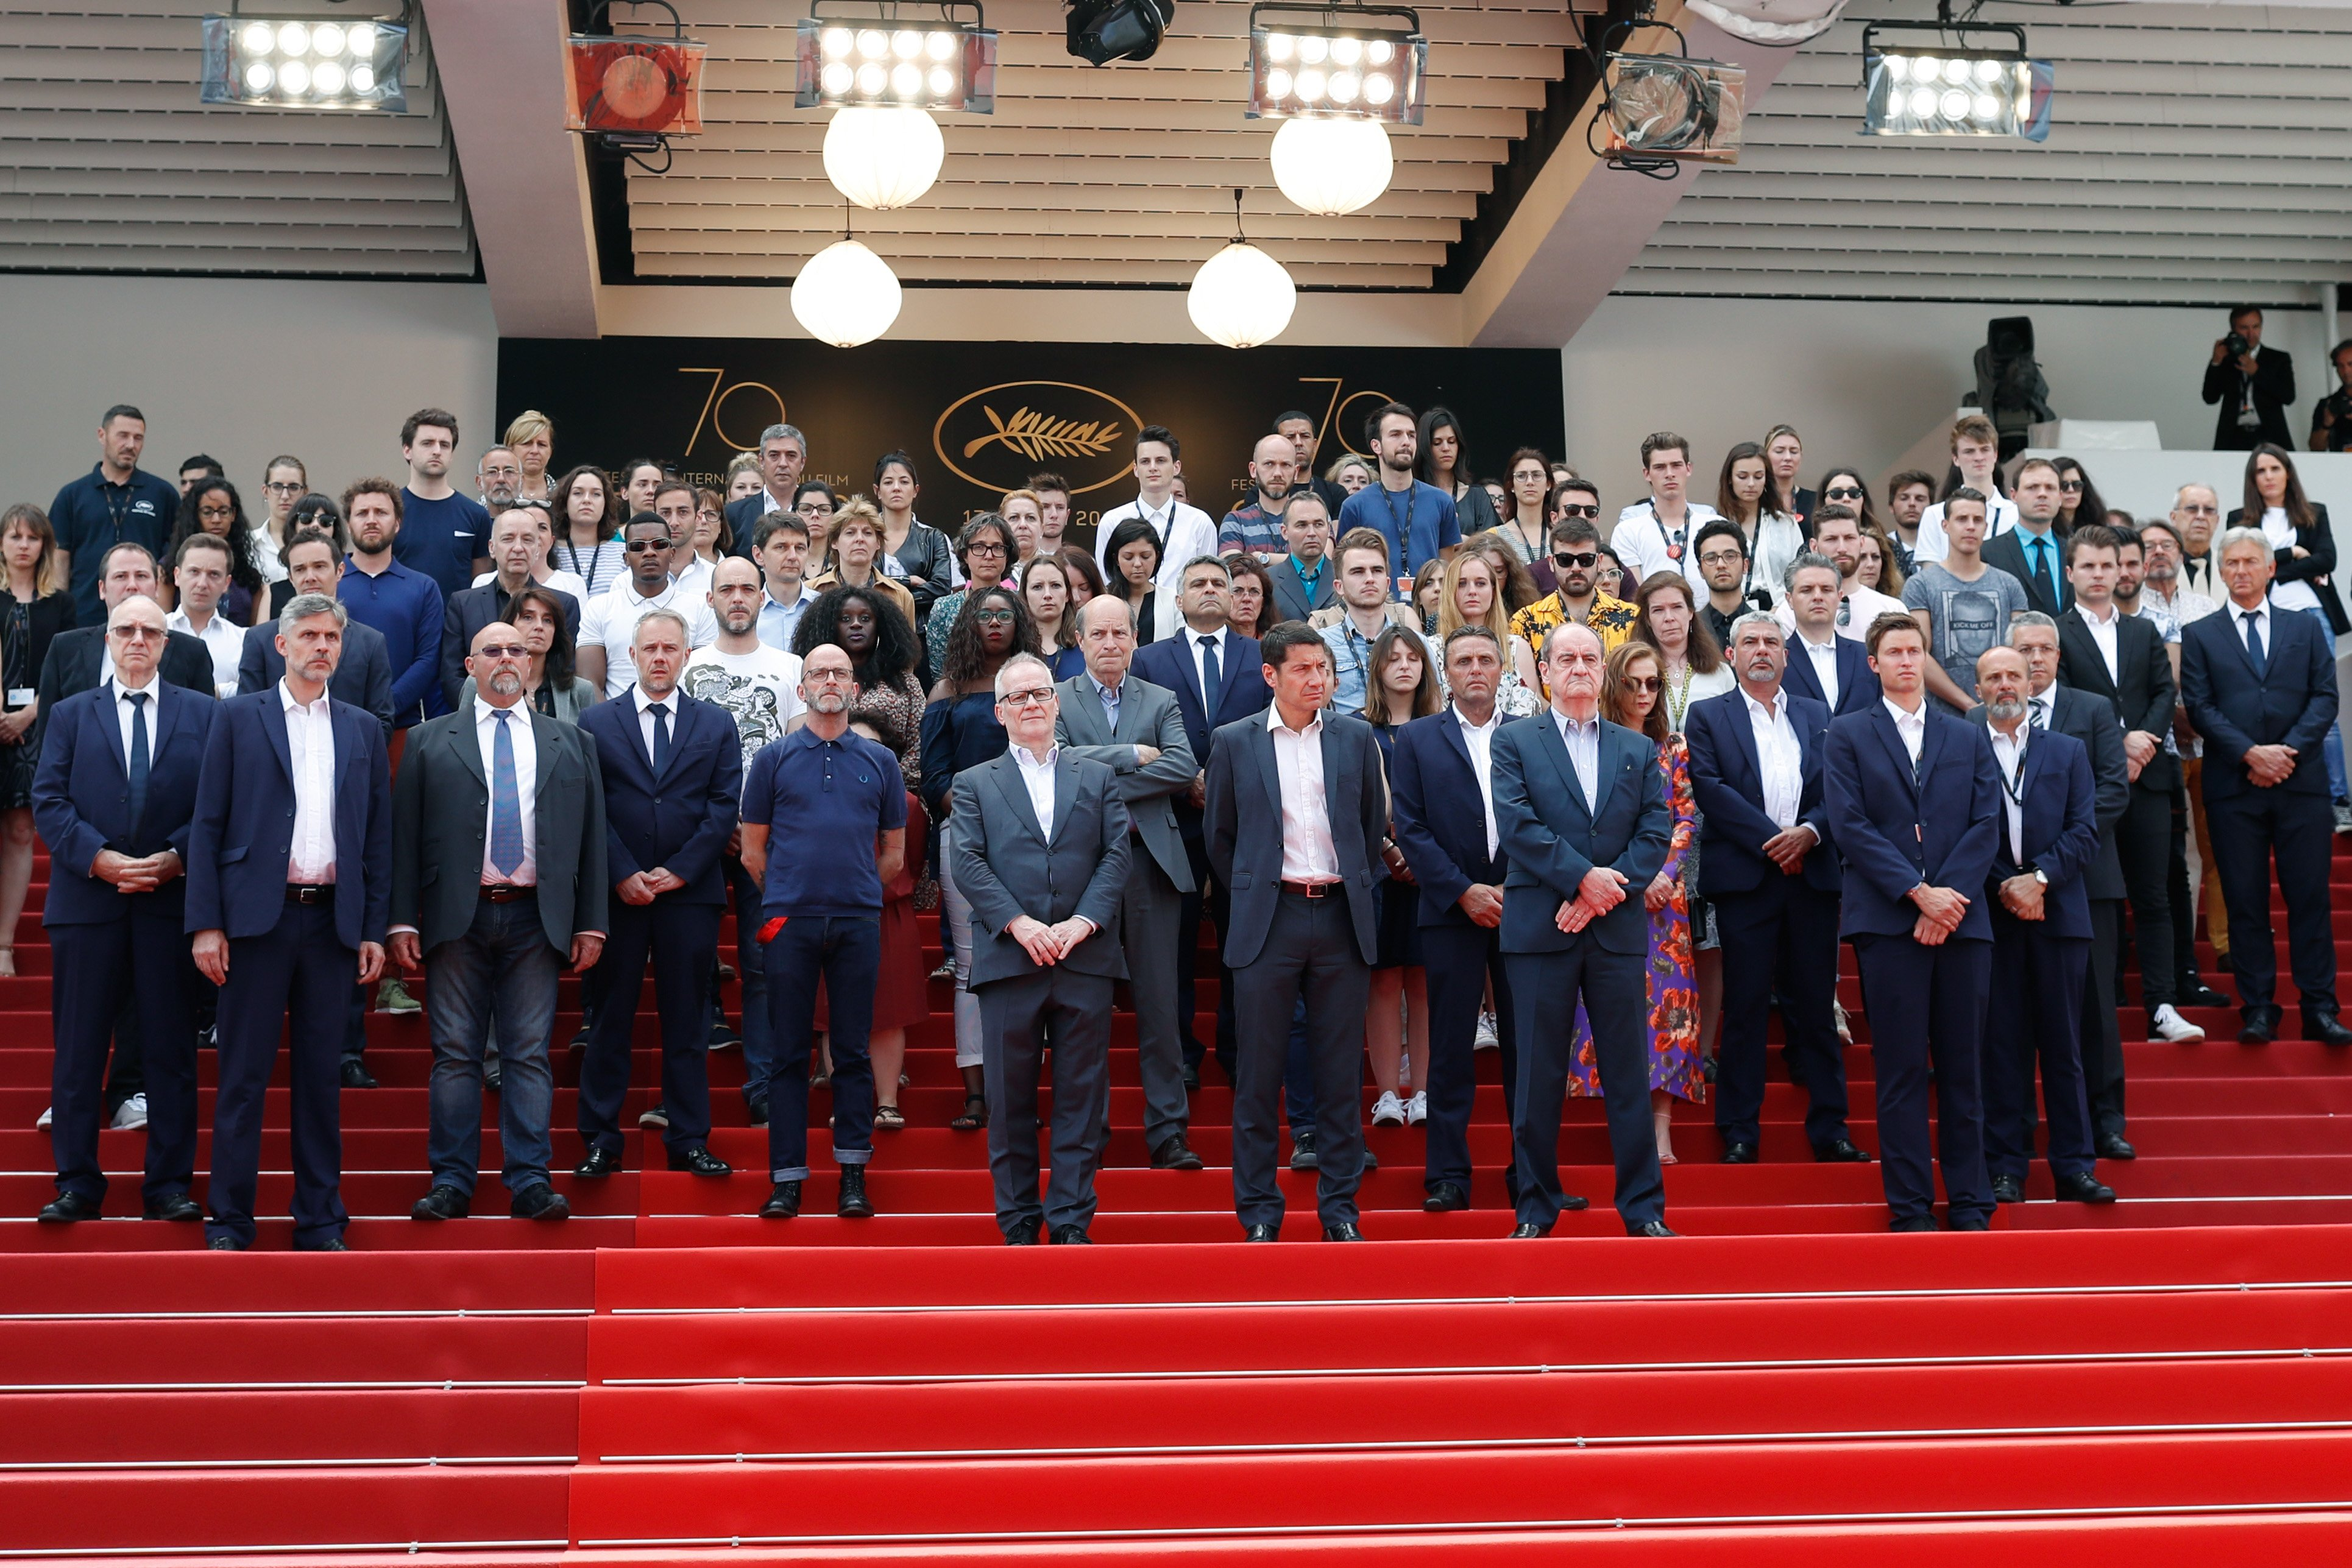 Director of the Cannes Film Festival Thierry Fremaux and President of the Cannes Film Festival Pierre Lescure lead a minute of silence for the victims of the Manchester terror attack as Isabelle Huppert and other staff and festival participants look on du